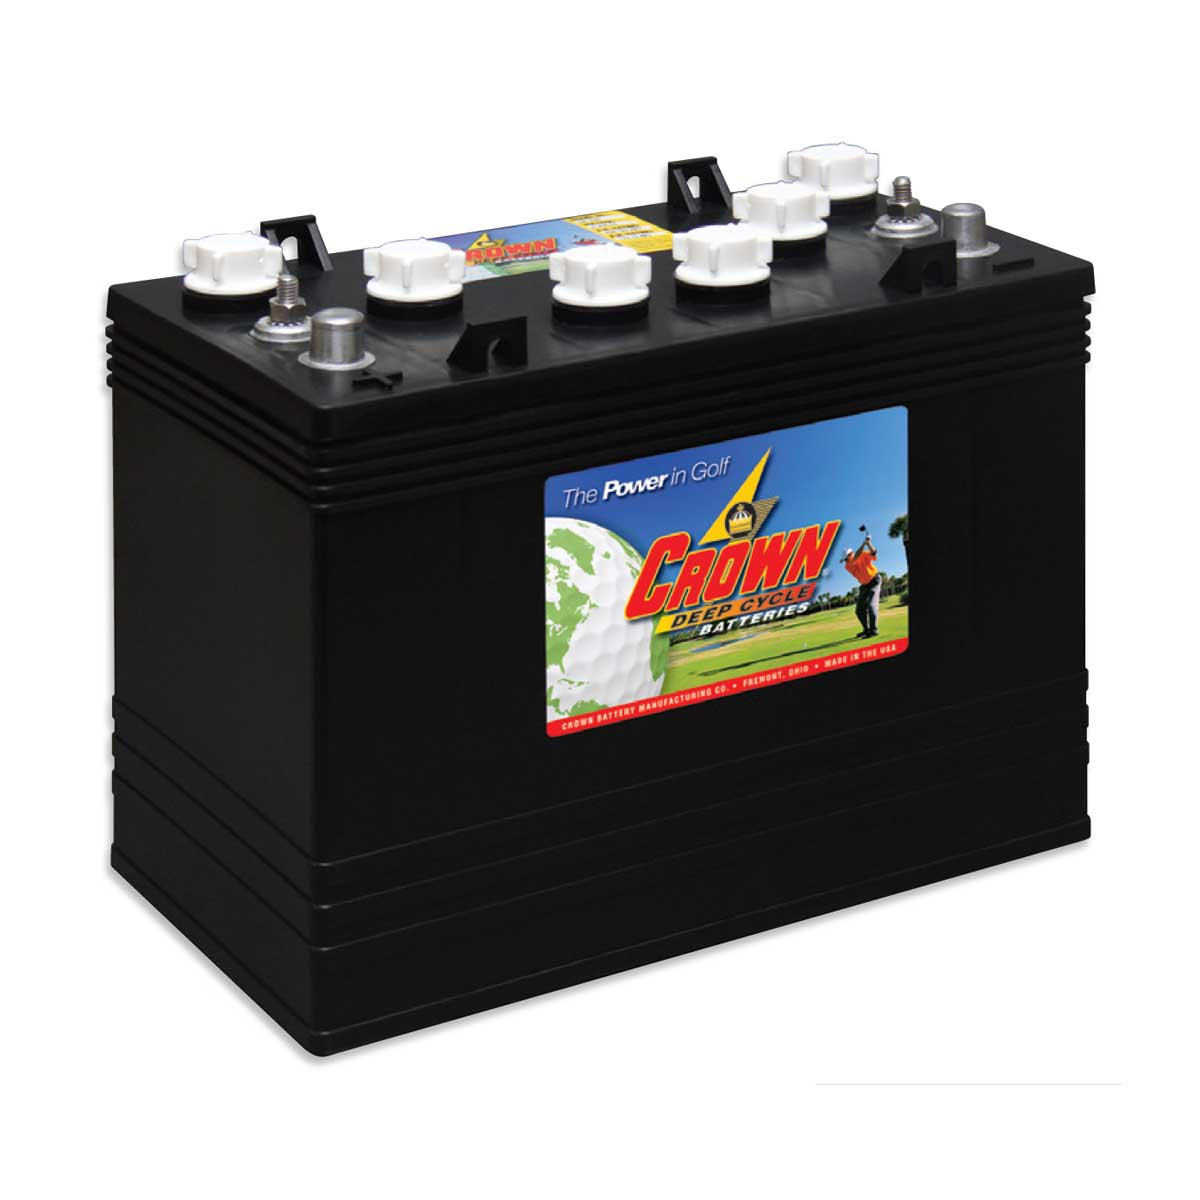 Crown Cr Gc155 12v 155ah Deep Cycle Battery From 163 312 49